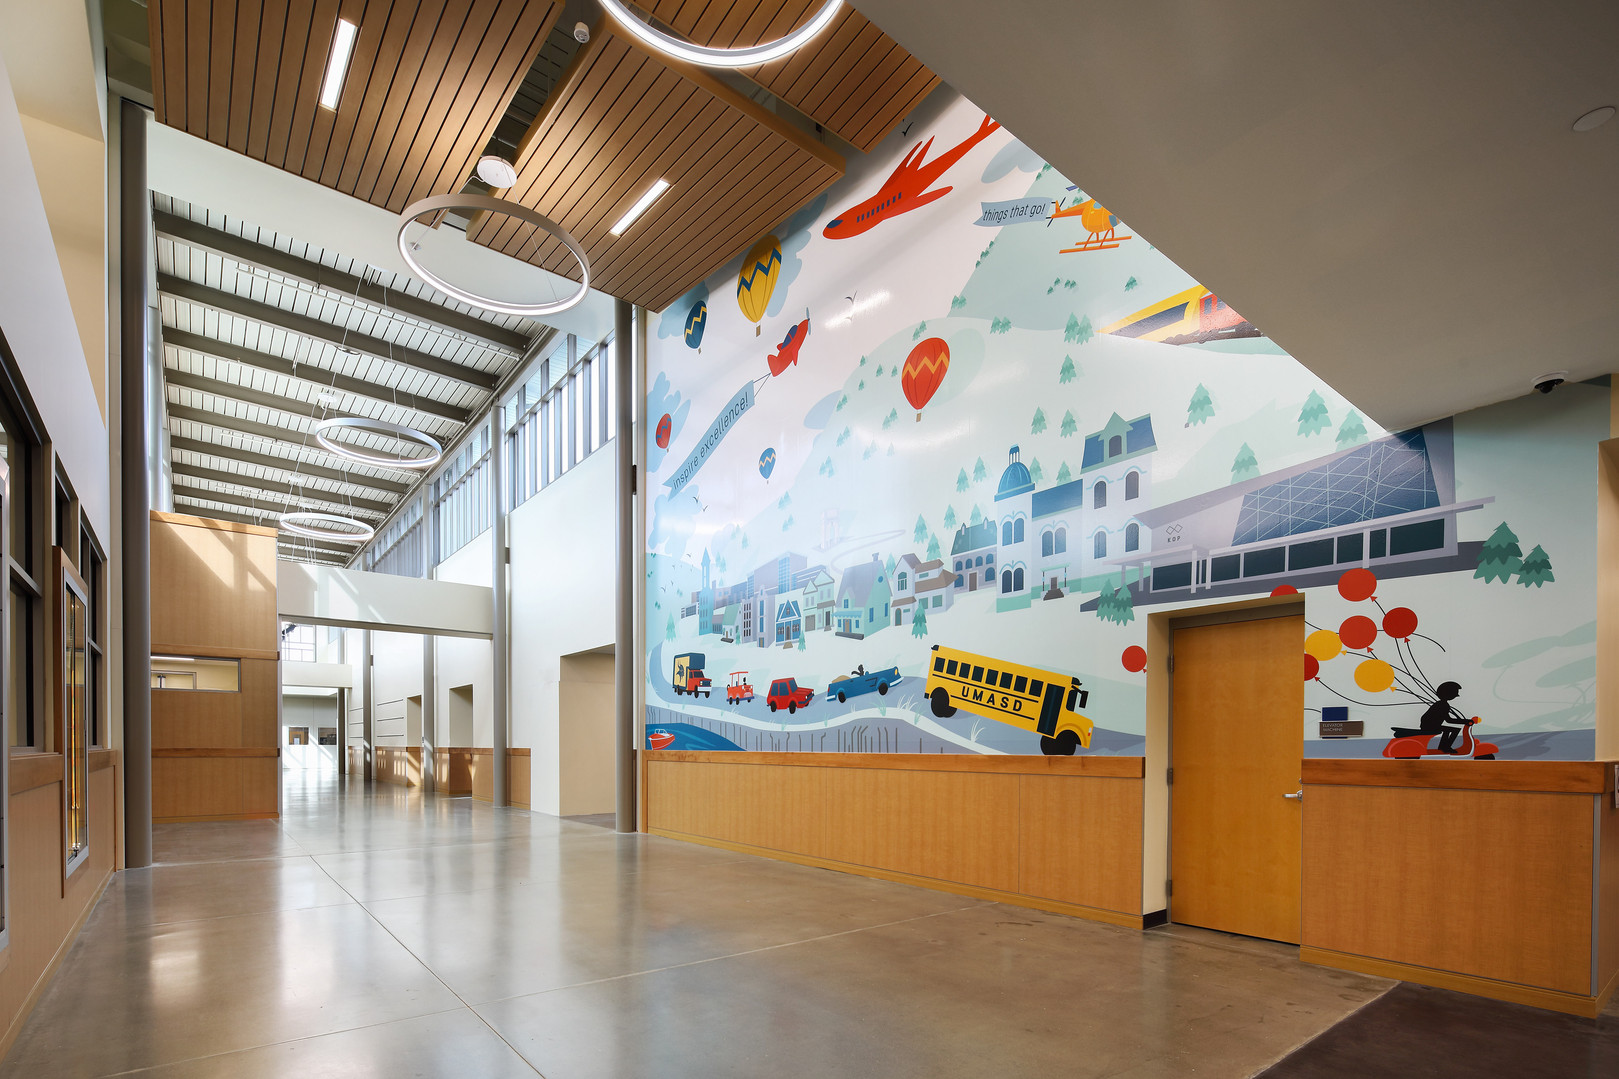 Vinyl Graphic mural installed in two sister elementary schools in Upper Merion Area School District. Photo by Matt Wargo.